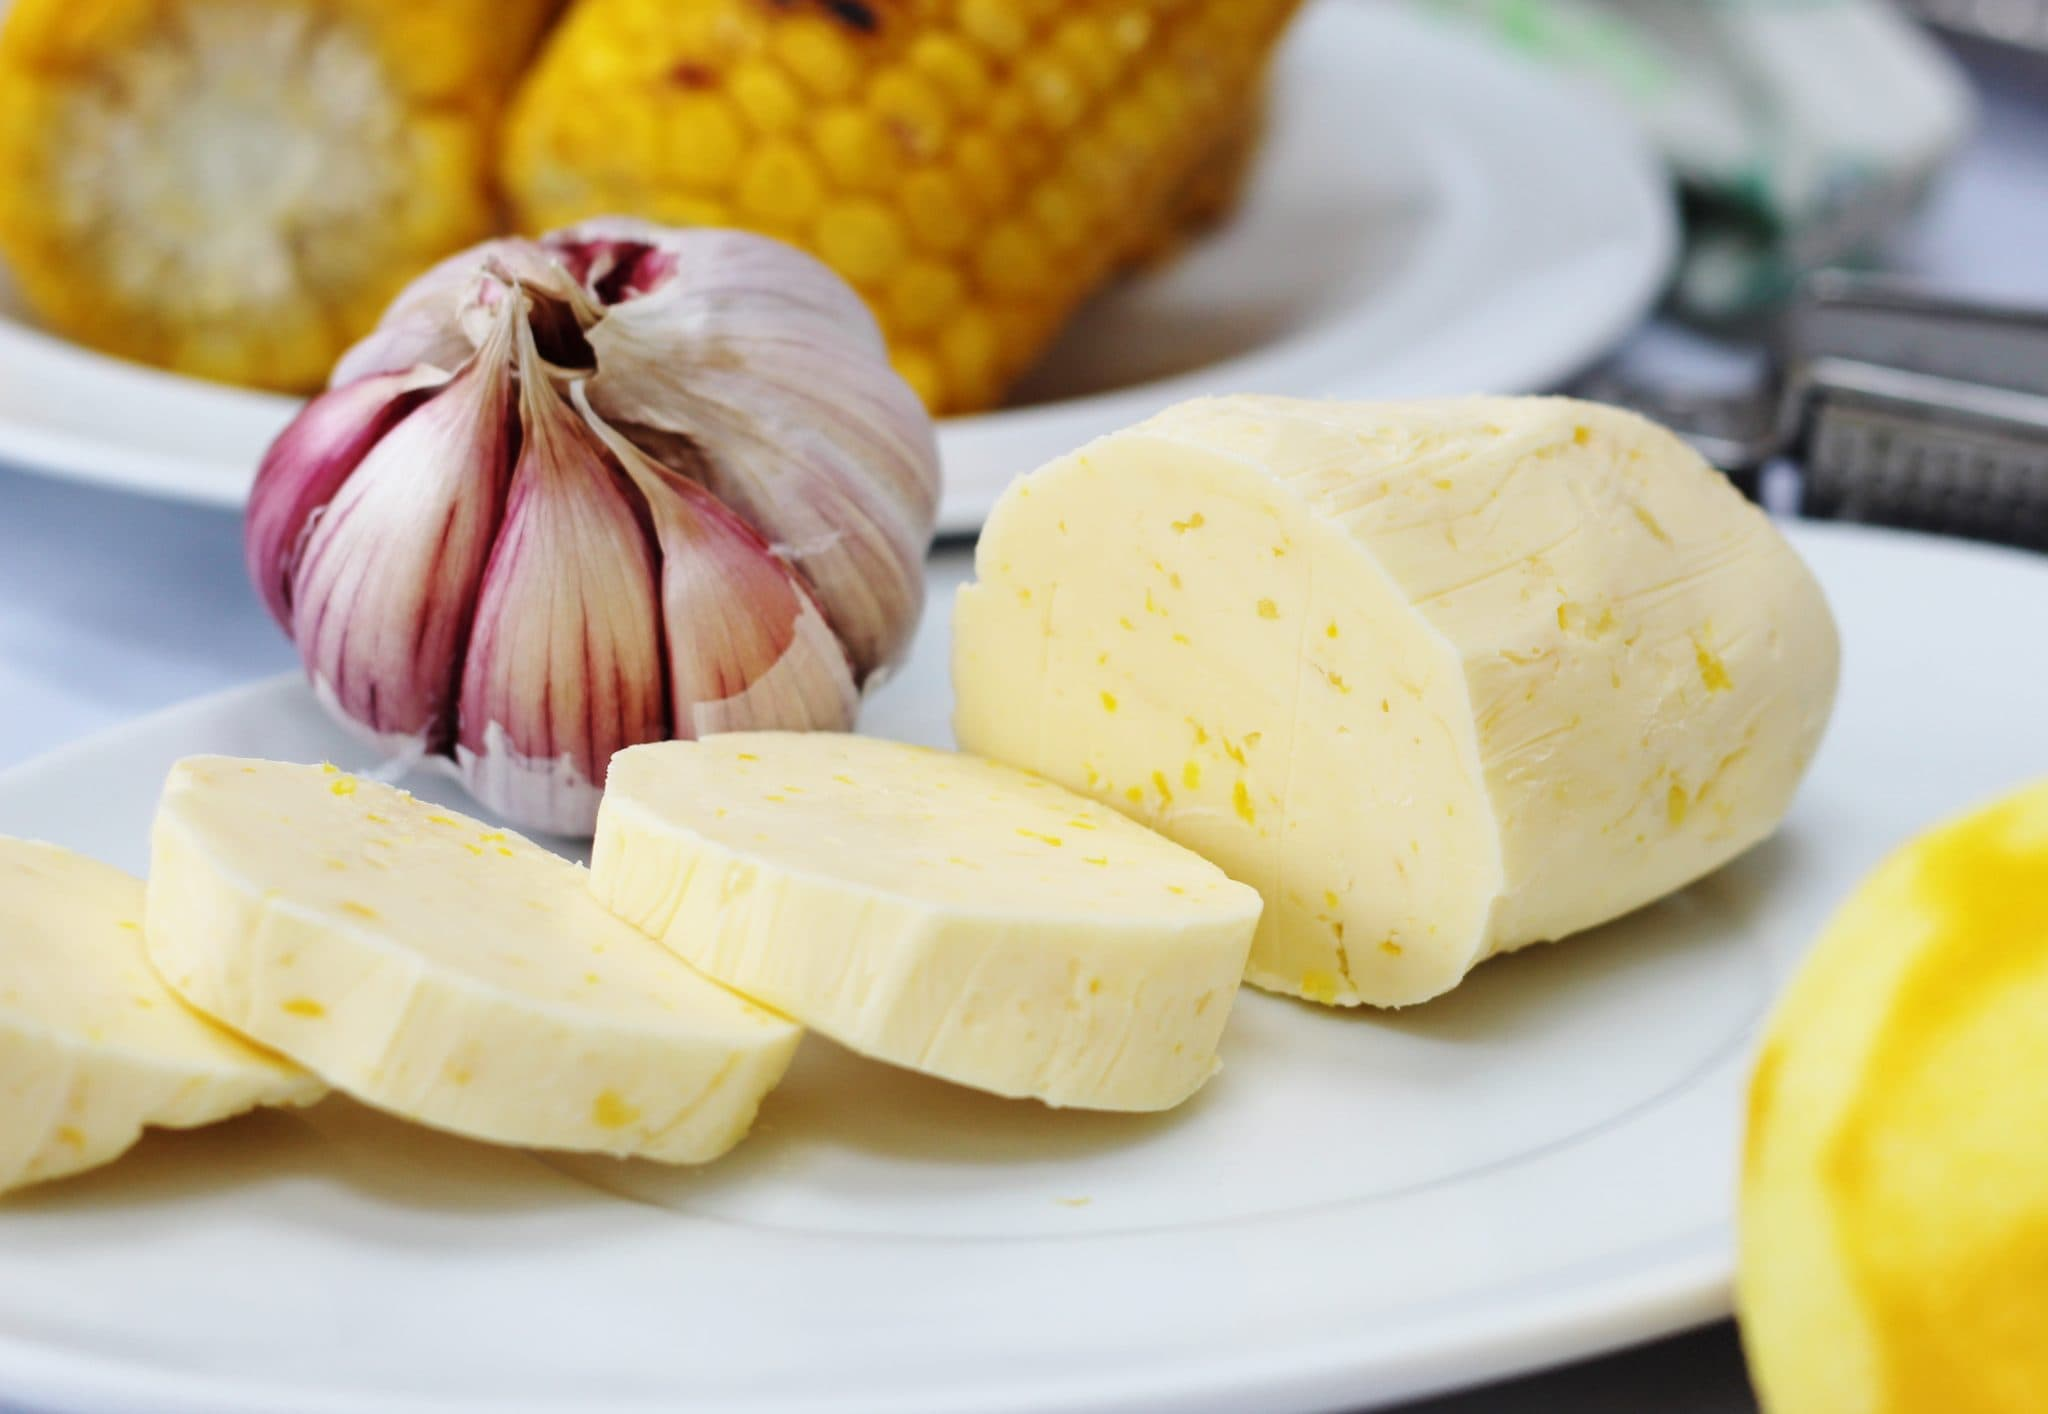 Recipe for homemade lemon garlic butter is delicious on barbecued vegetables, corn on the cob, fish or chicken.